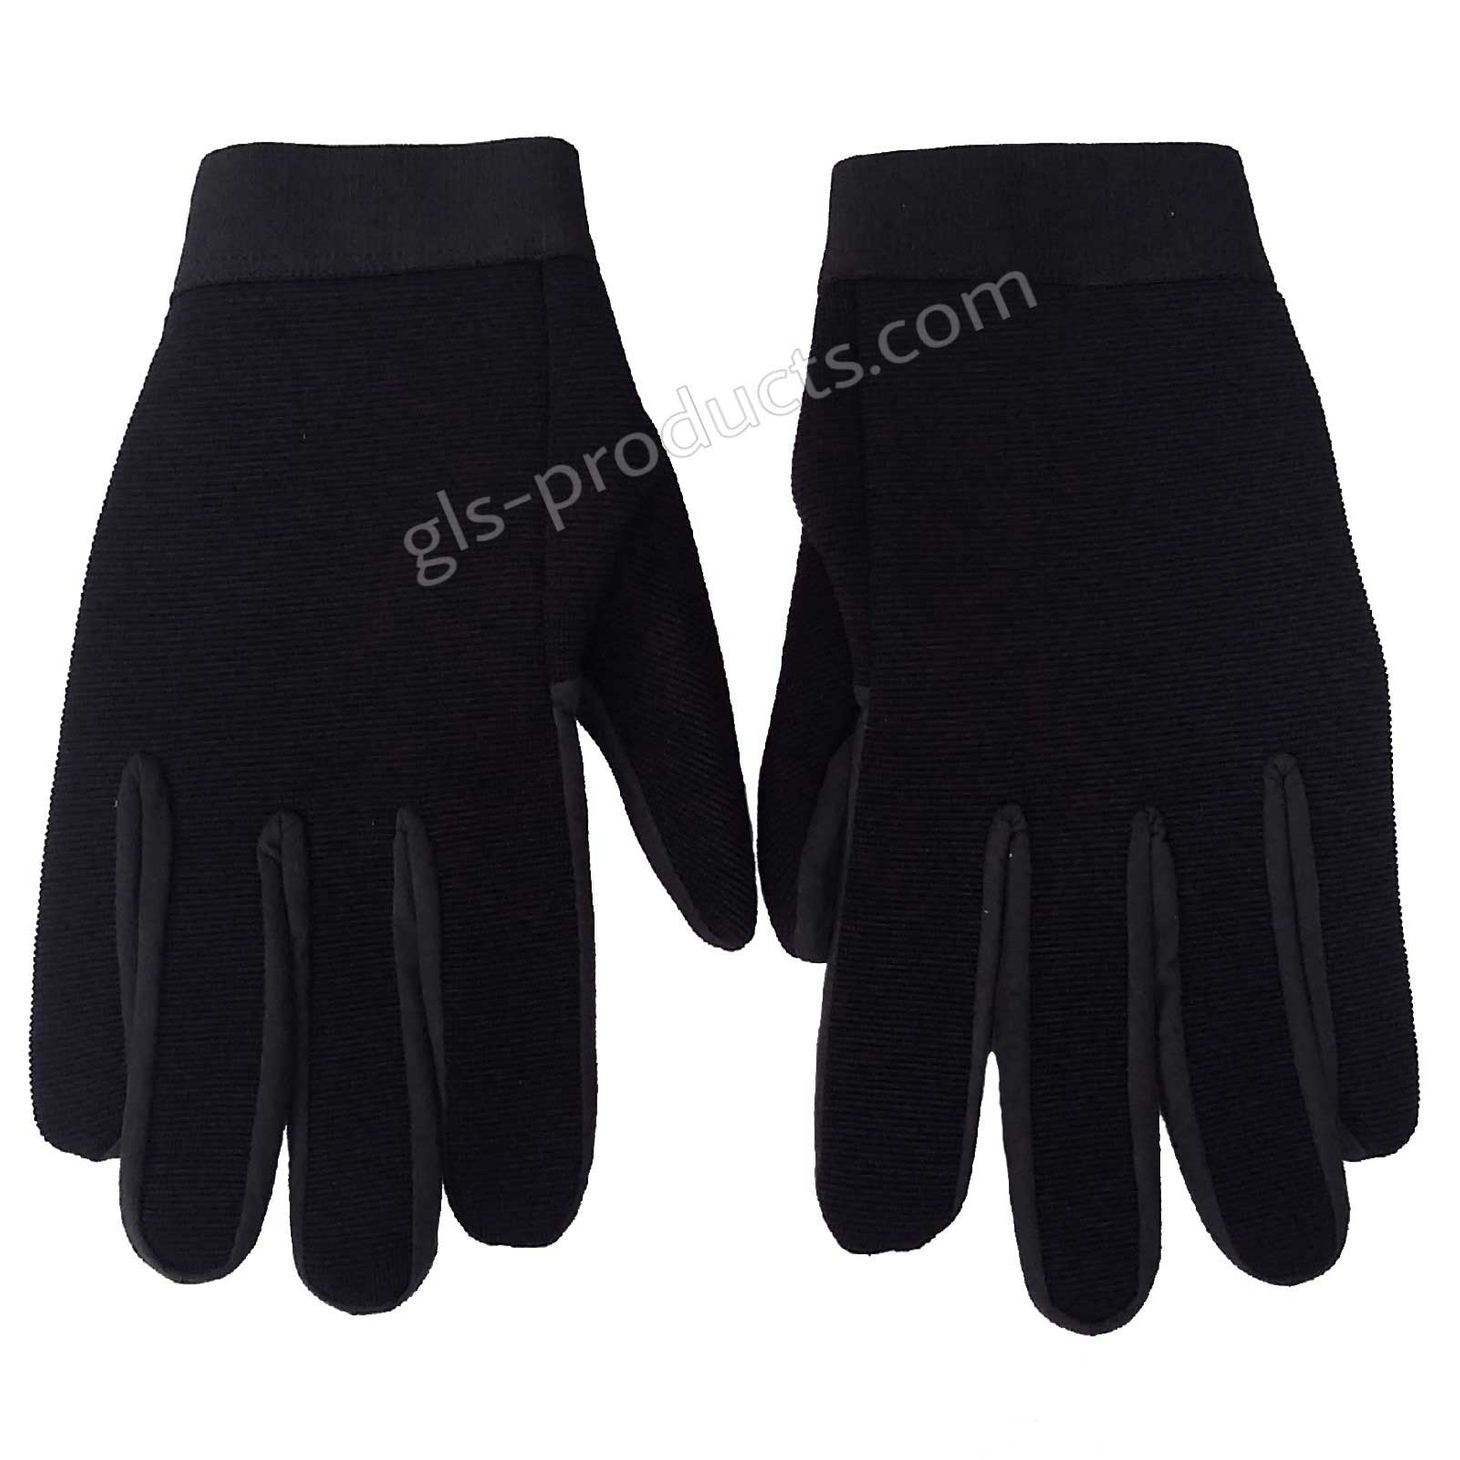 Mechanic Gloves, Flexible Neoprene Gloves – Picture 14